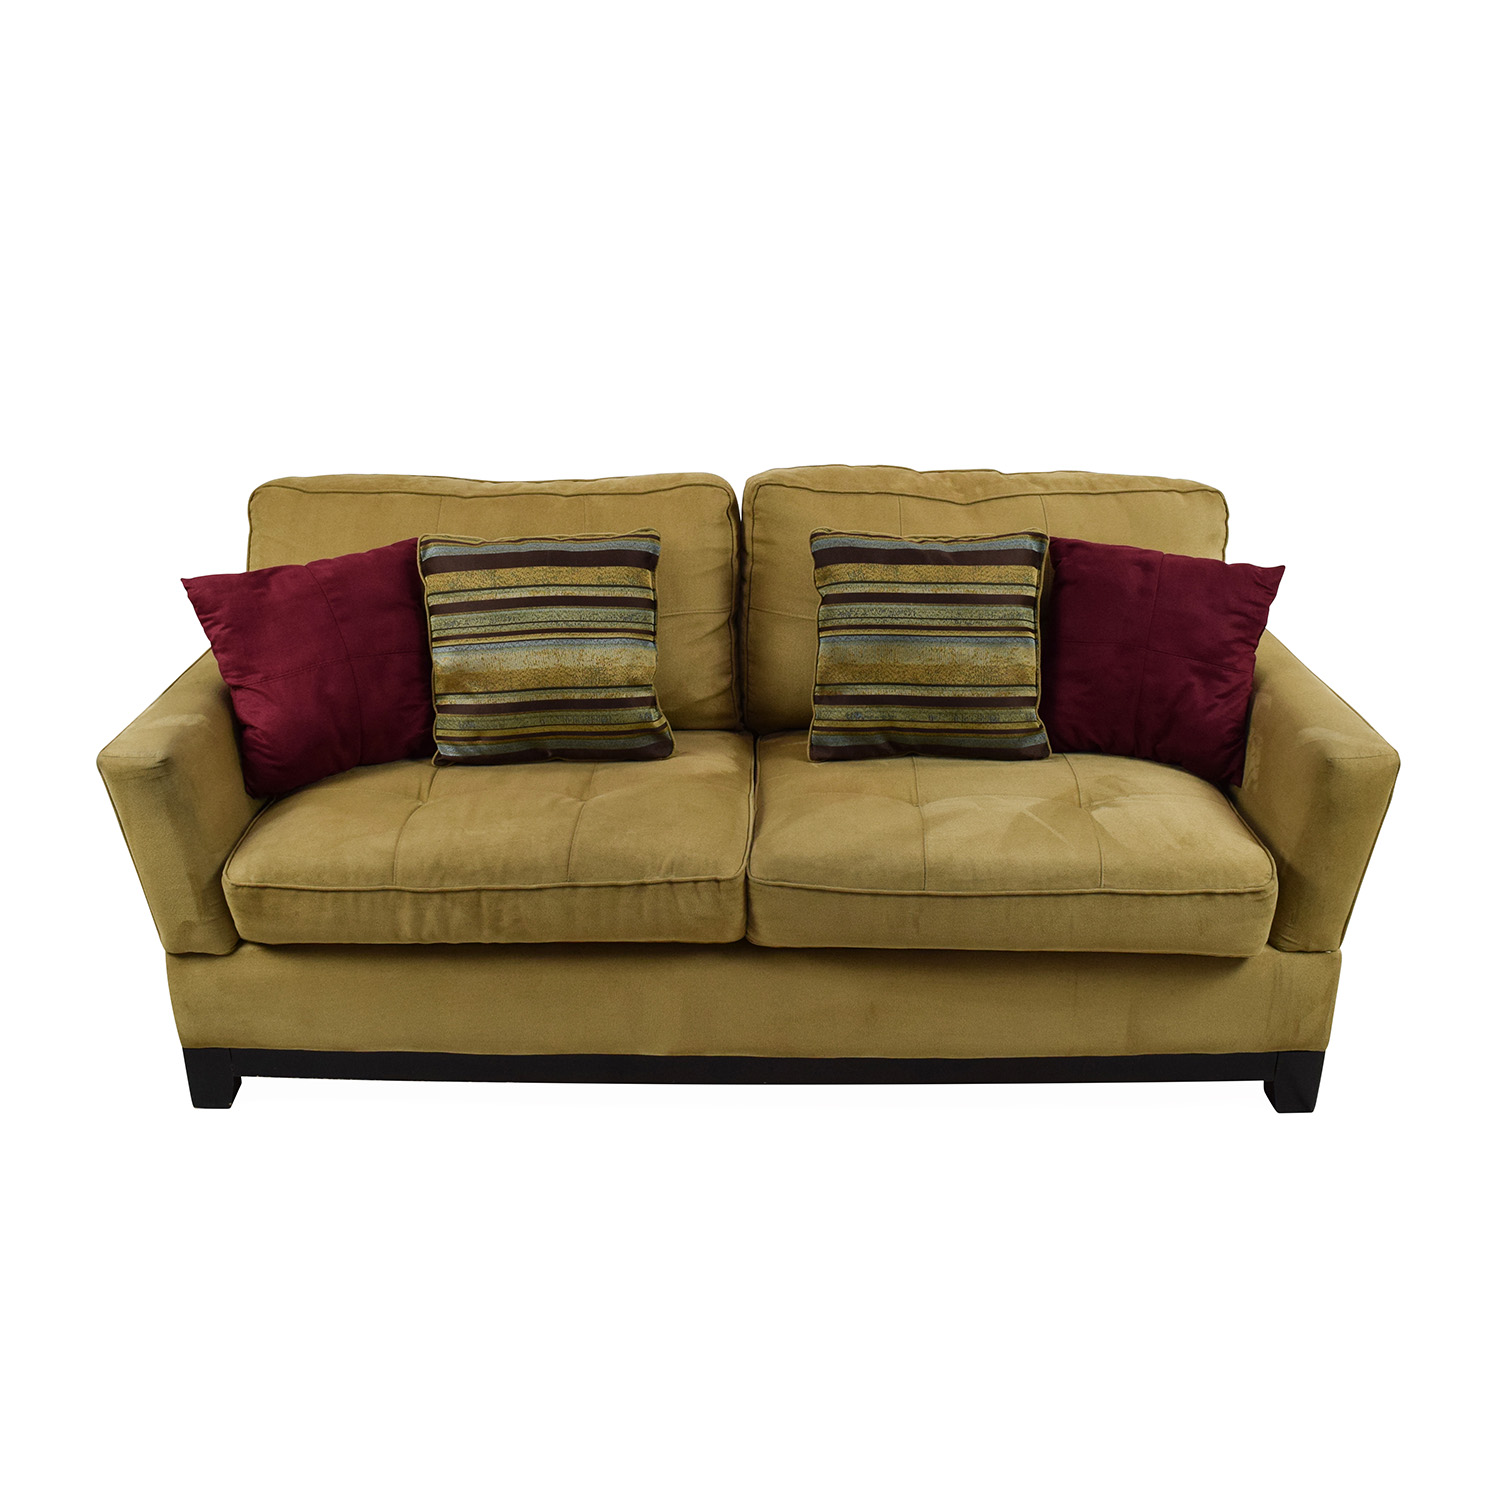 Jennifer Convertibles Jennifer Convertibles Tan Sofa used